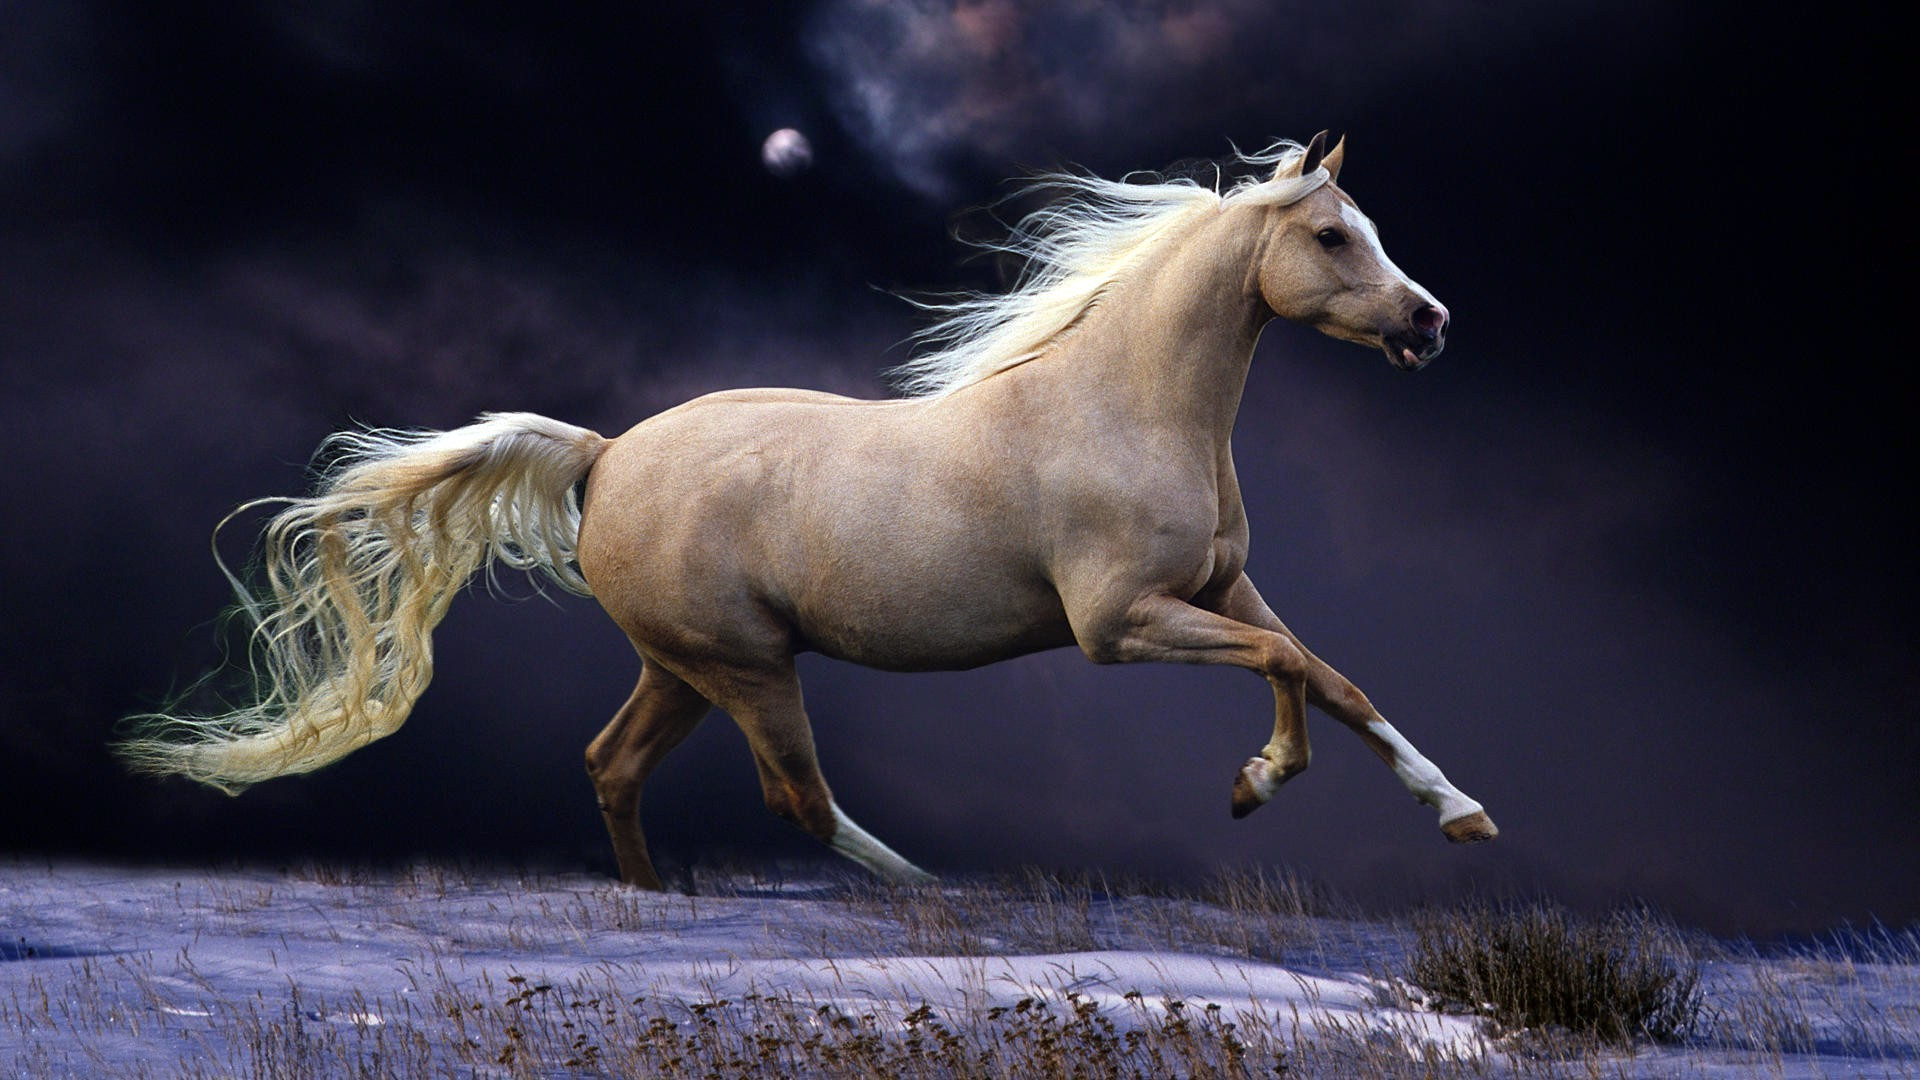 horses cavalry mare horse mammal stallion equine mane animal pony equestrian mustang wildlife action sitting fast one side view nature